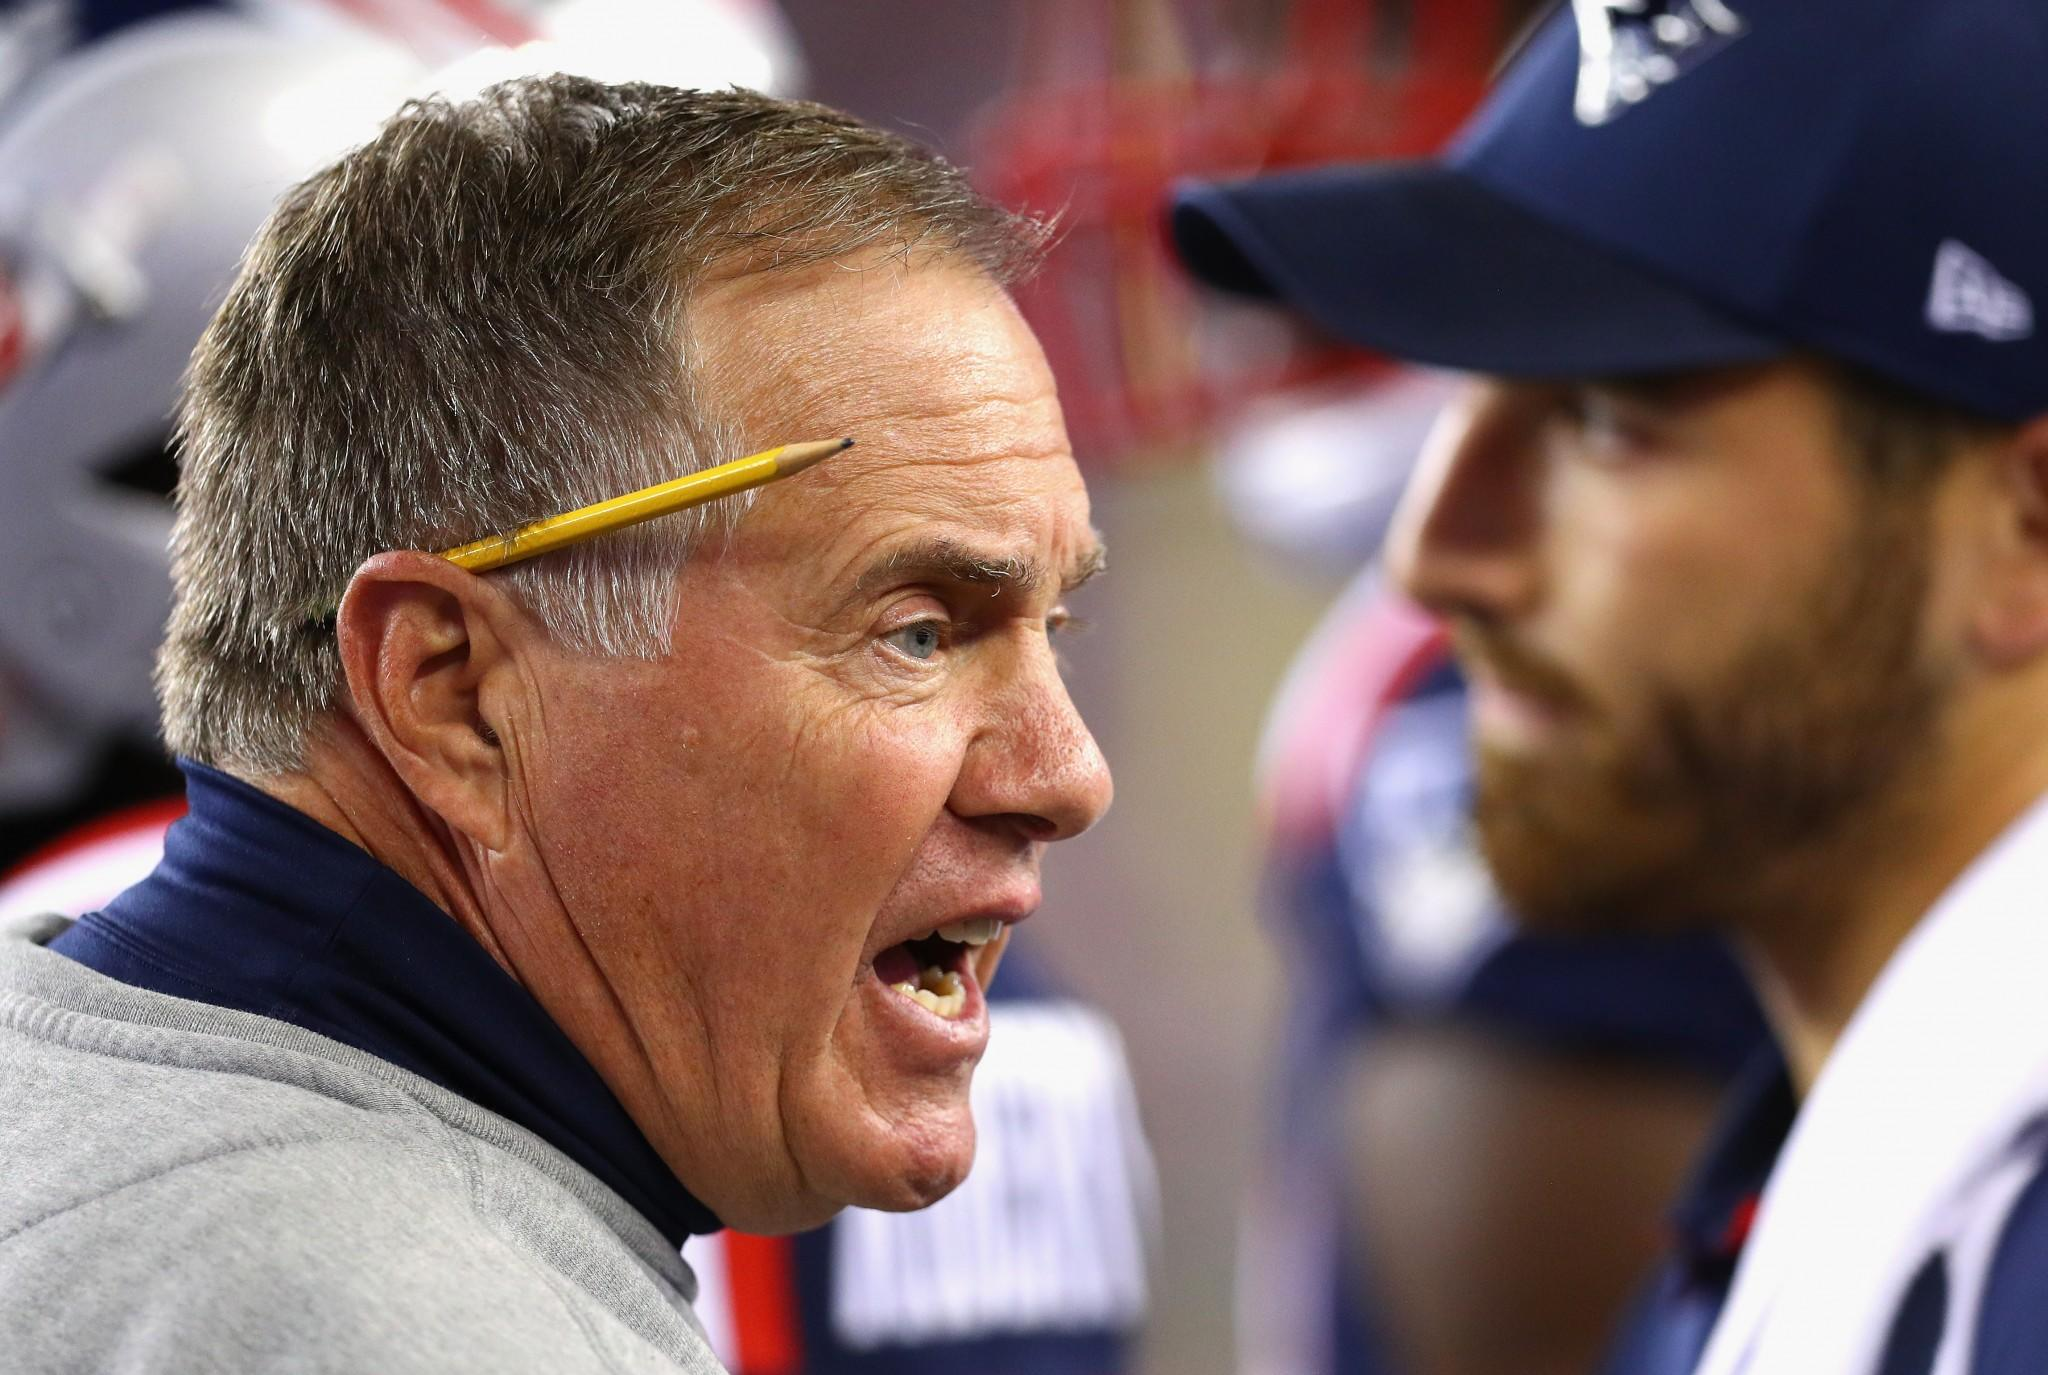 Listen to Bill Belichick tear into 'Tuck Rule' referee after Week 3 fumble (Video)